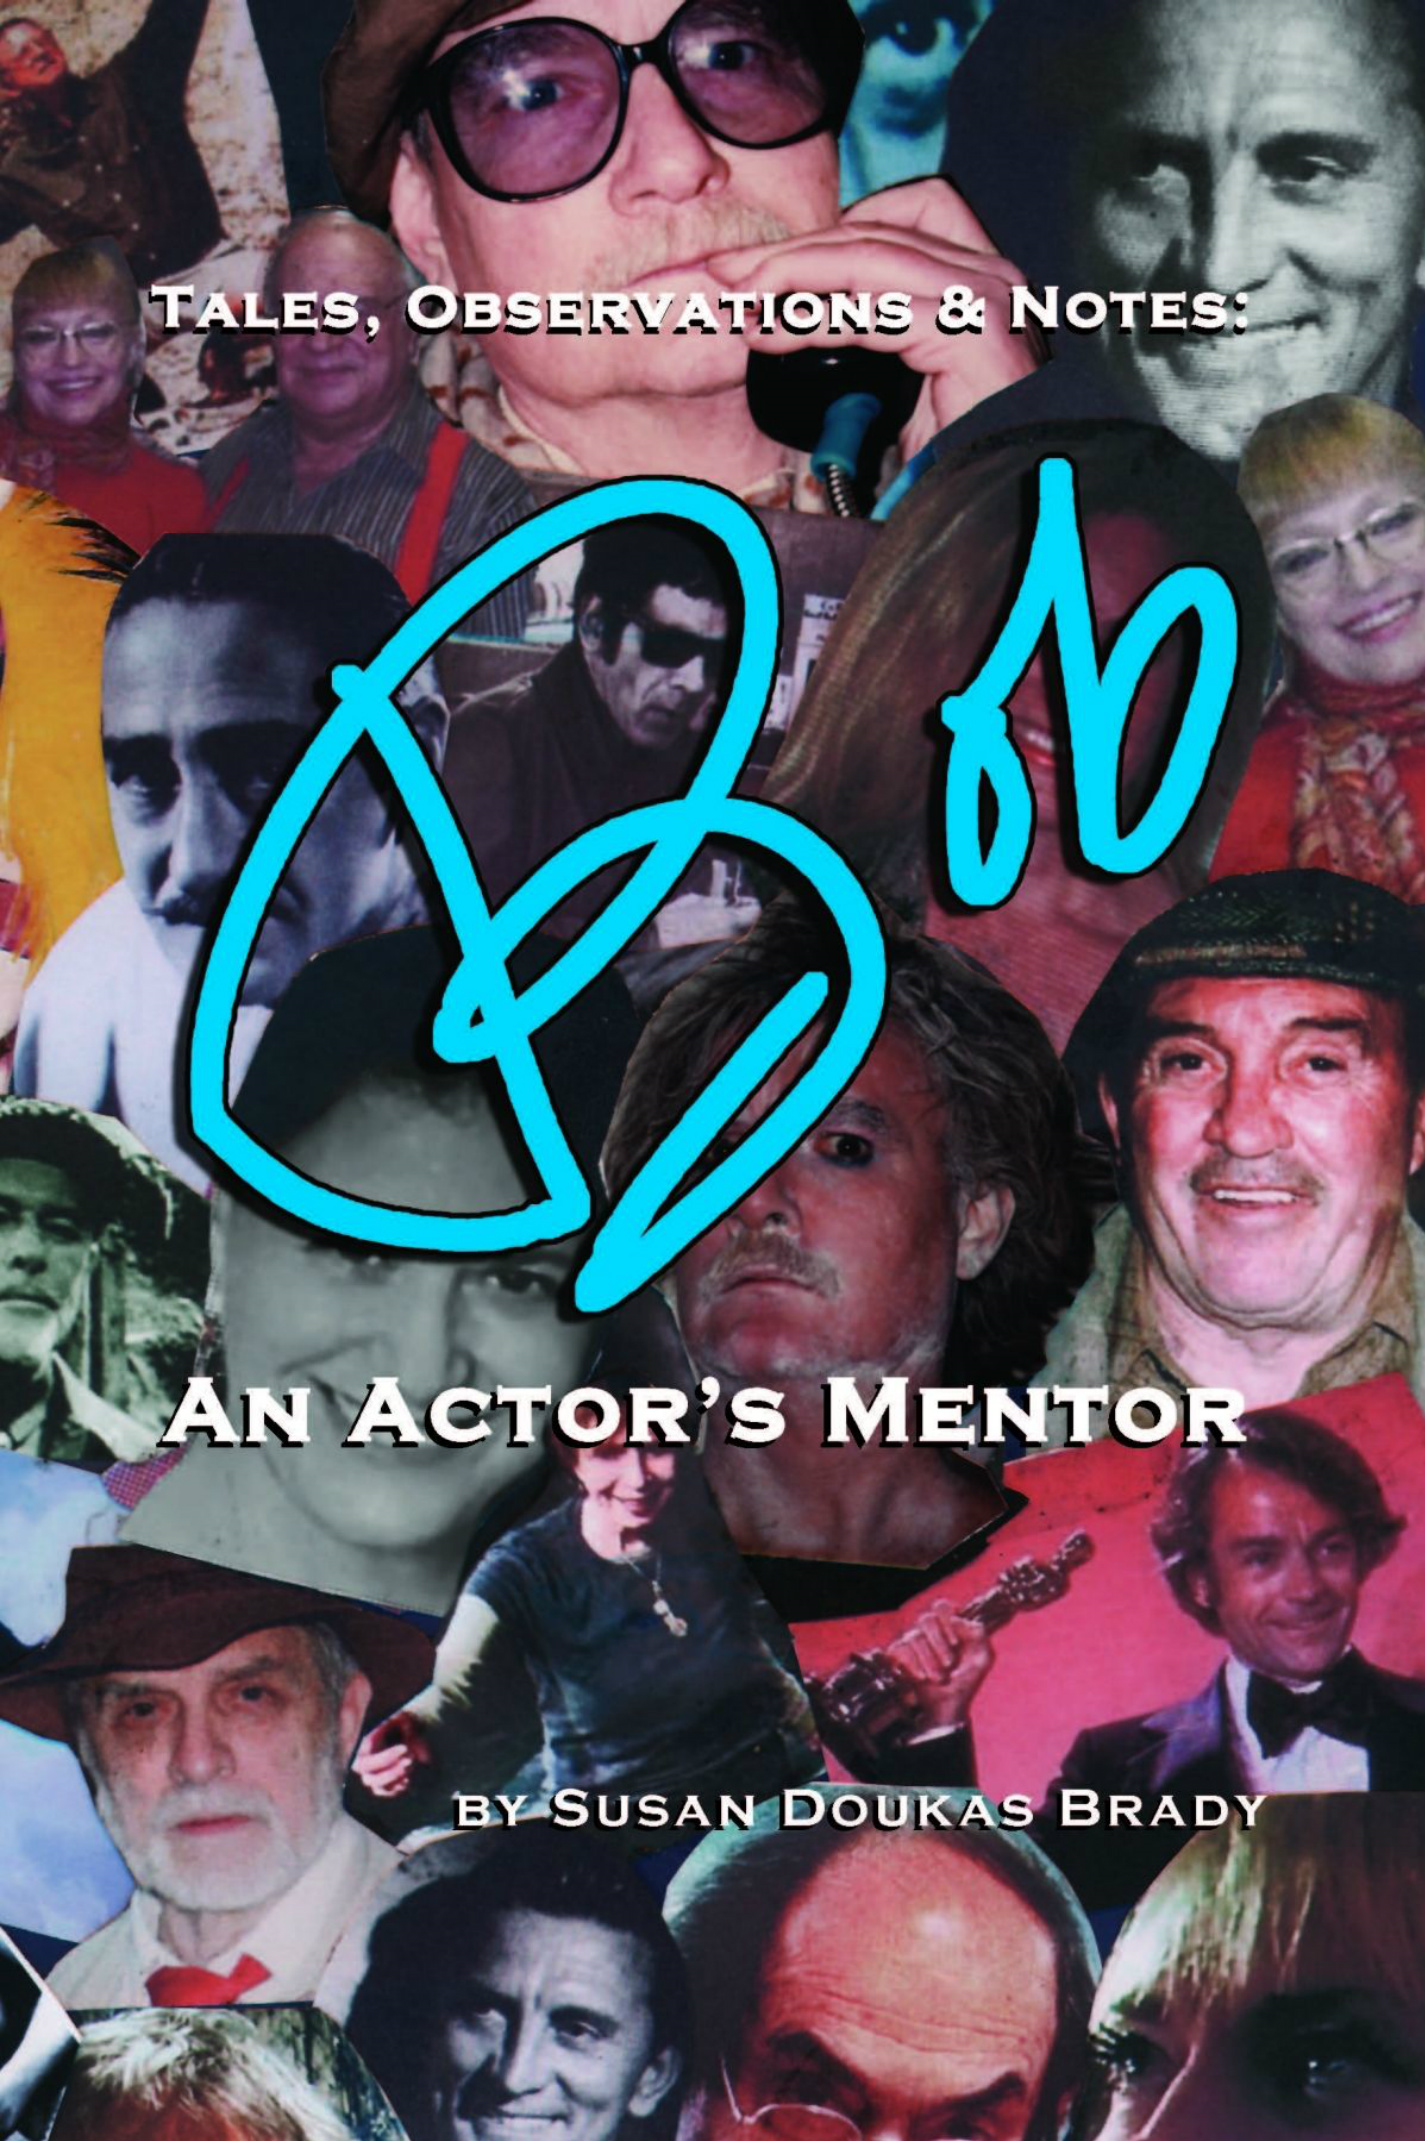 Susan Doukas Brady  Robert Austin Brady - Tales, Observations & Notes:  BOB  An Actor's Mentor